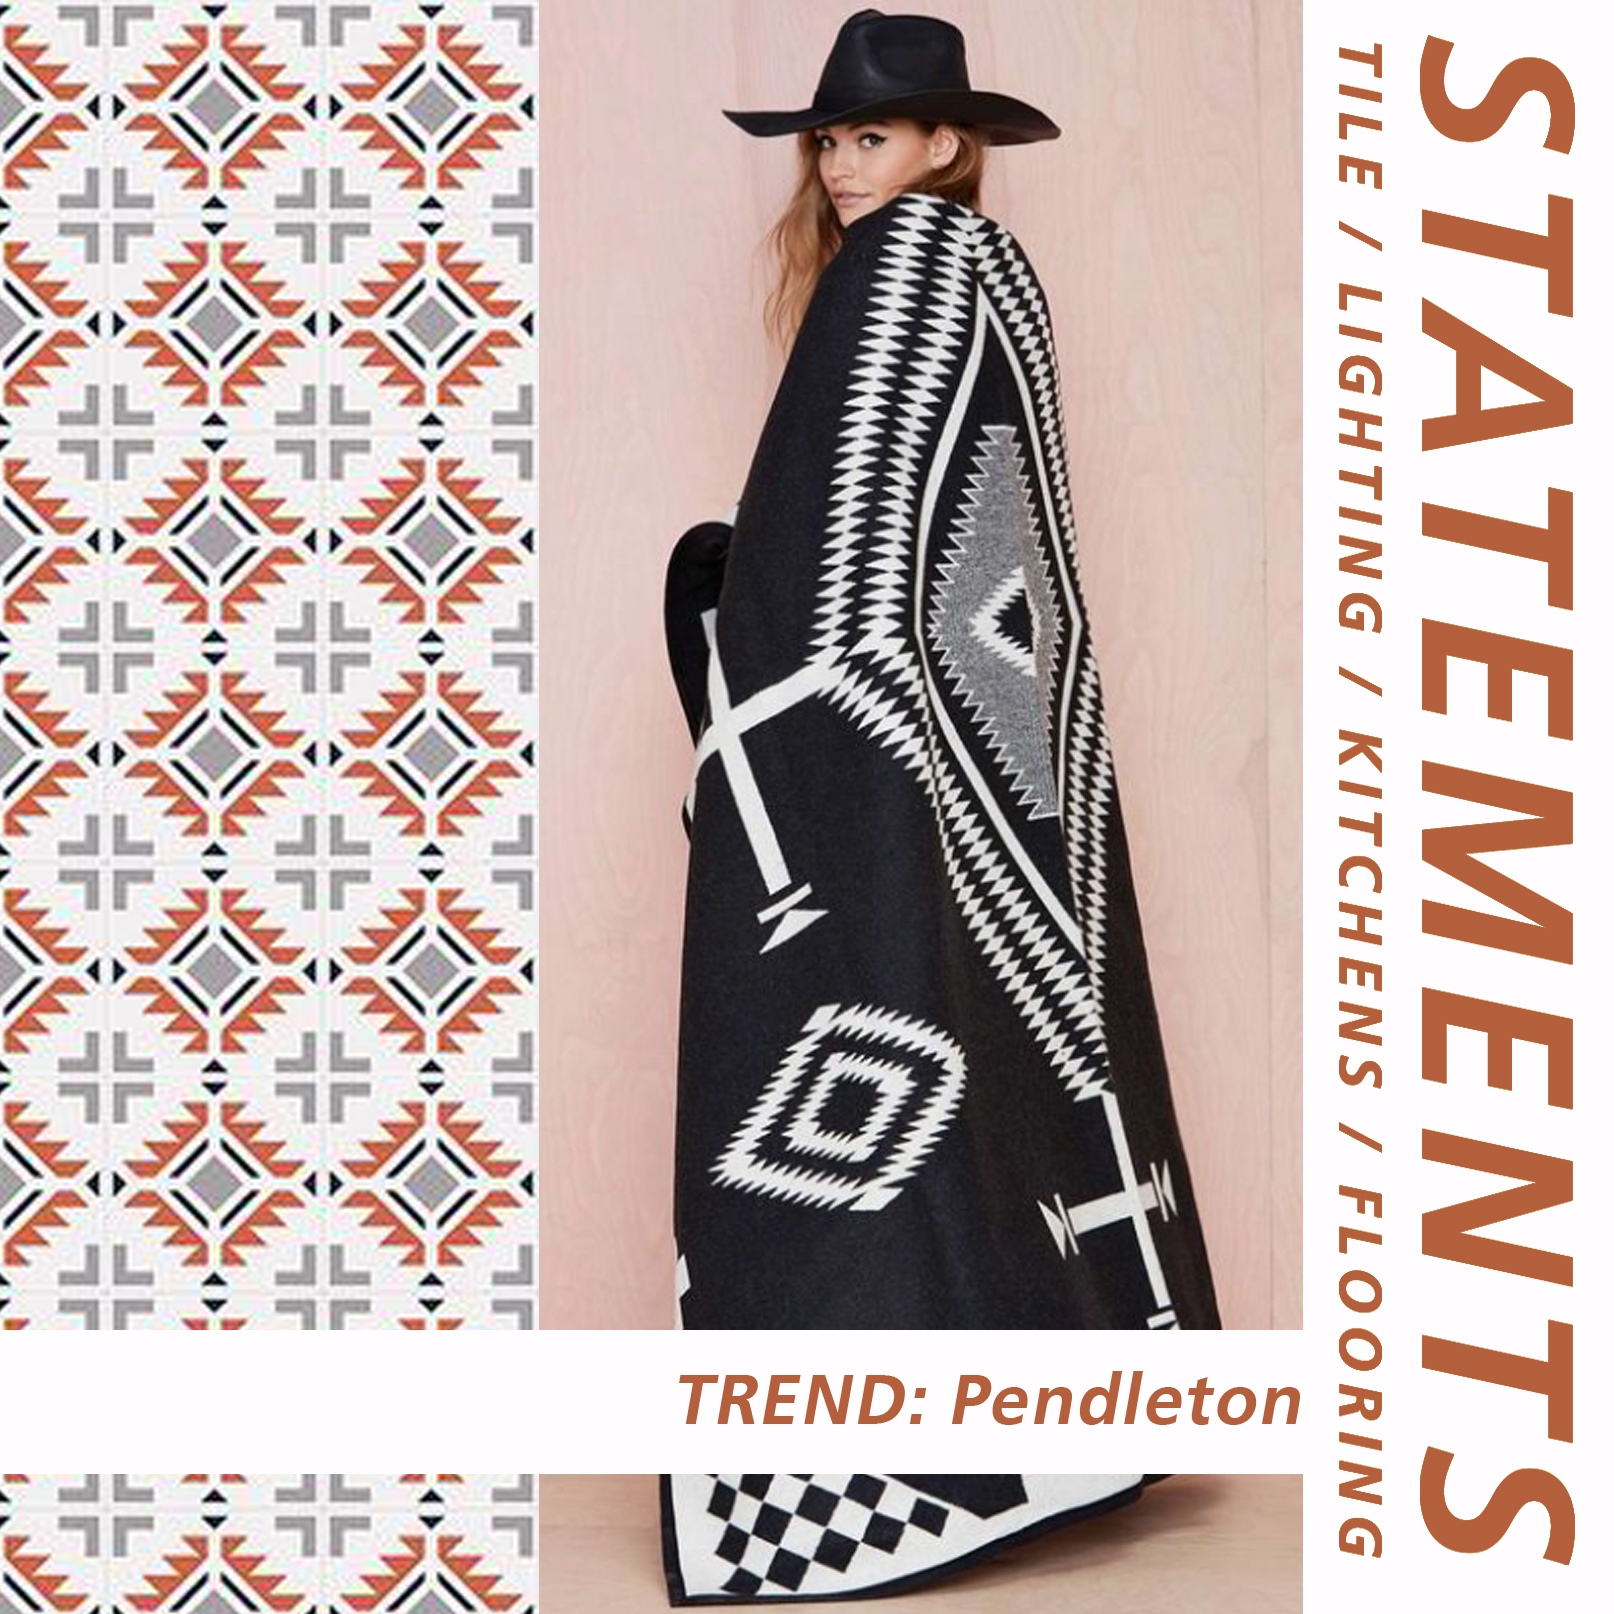 Statements_In-Tile_trend_Pendleton_share.jpg